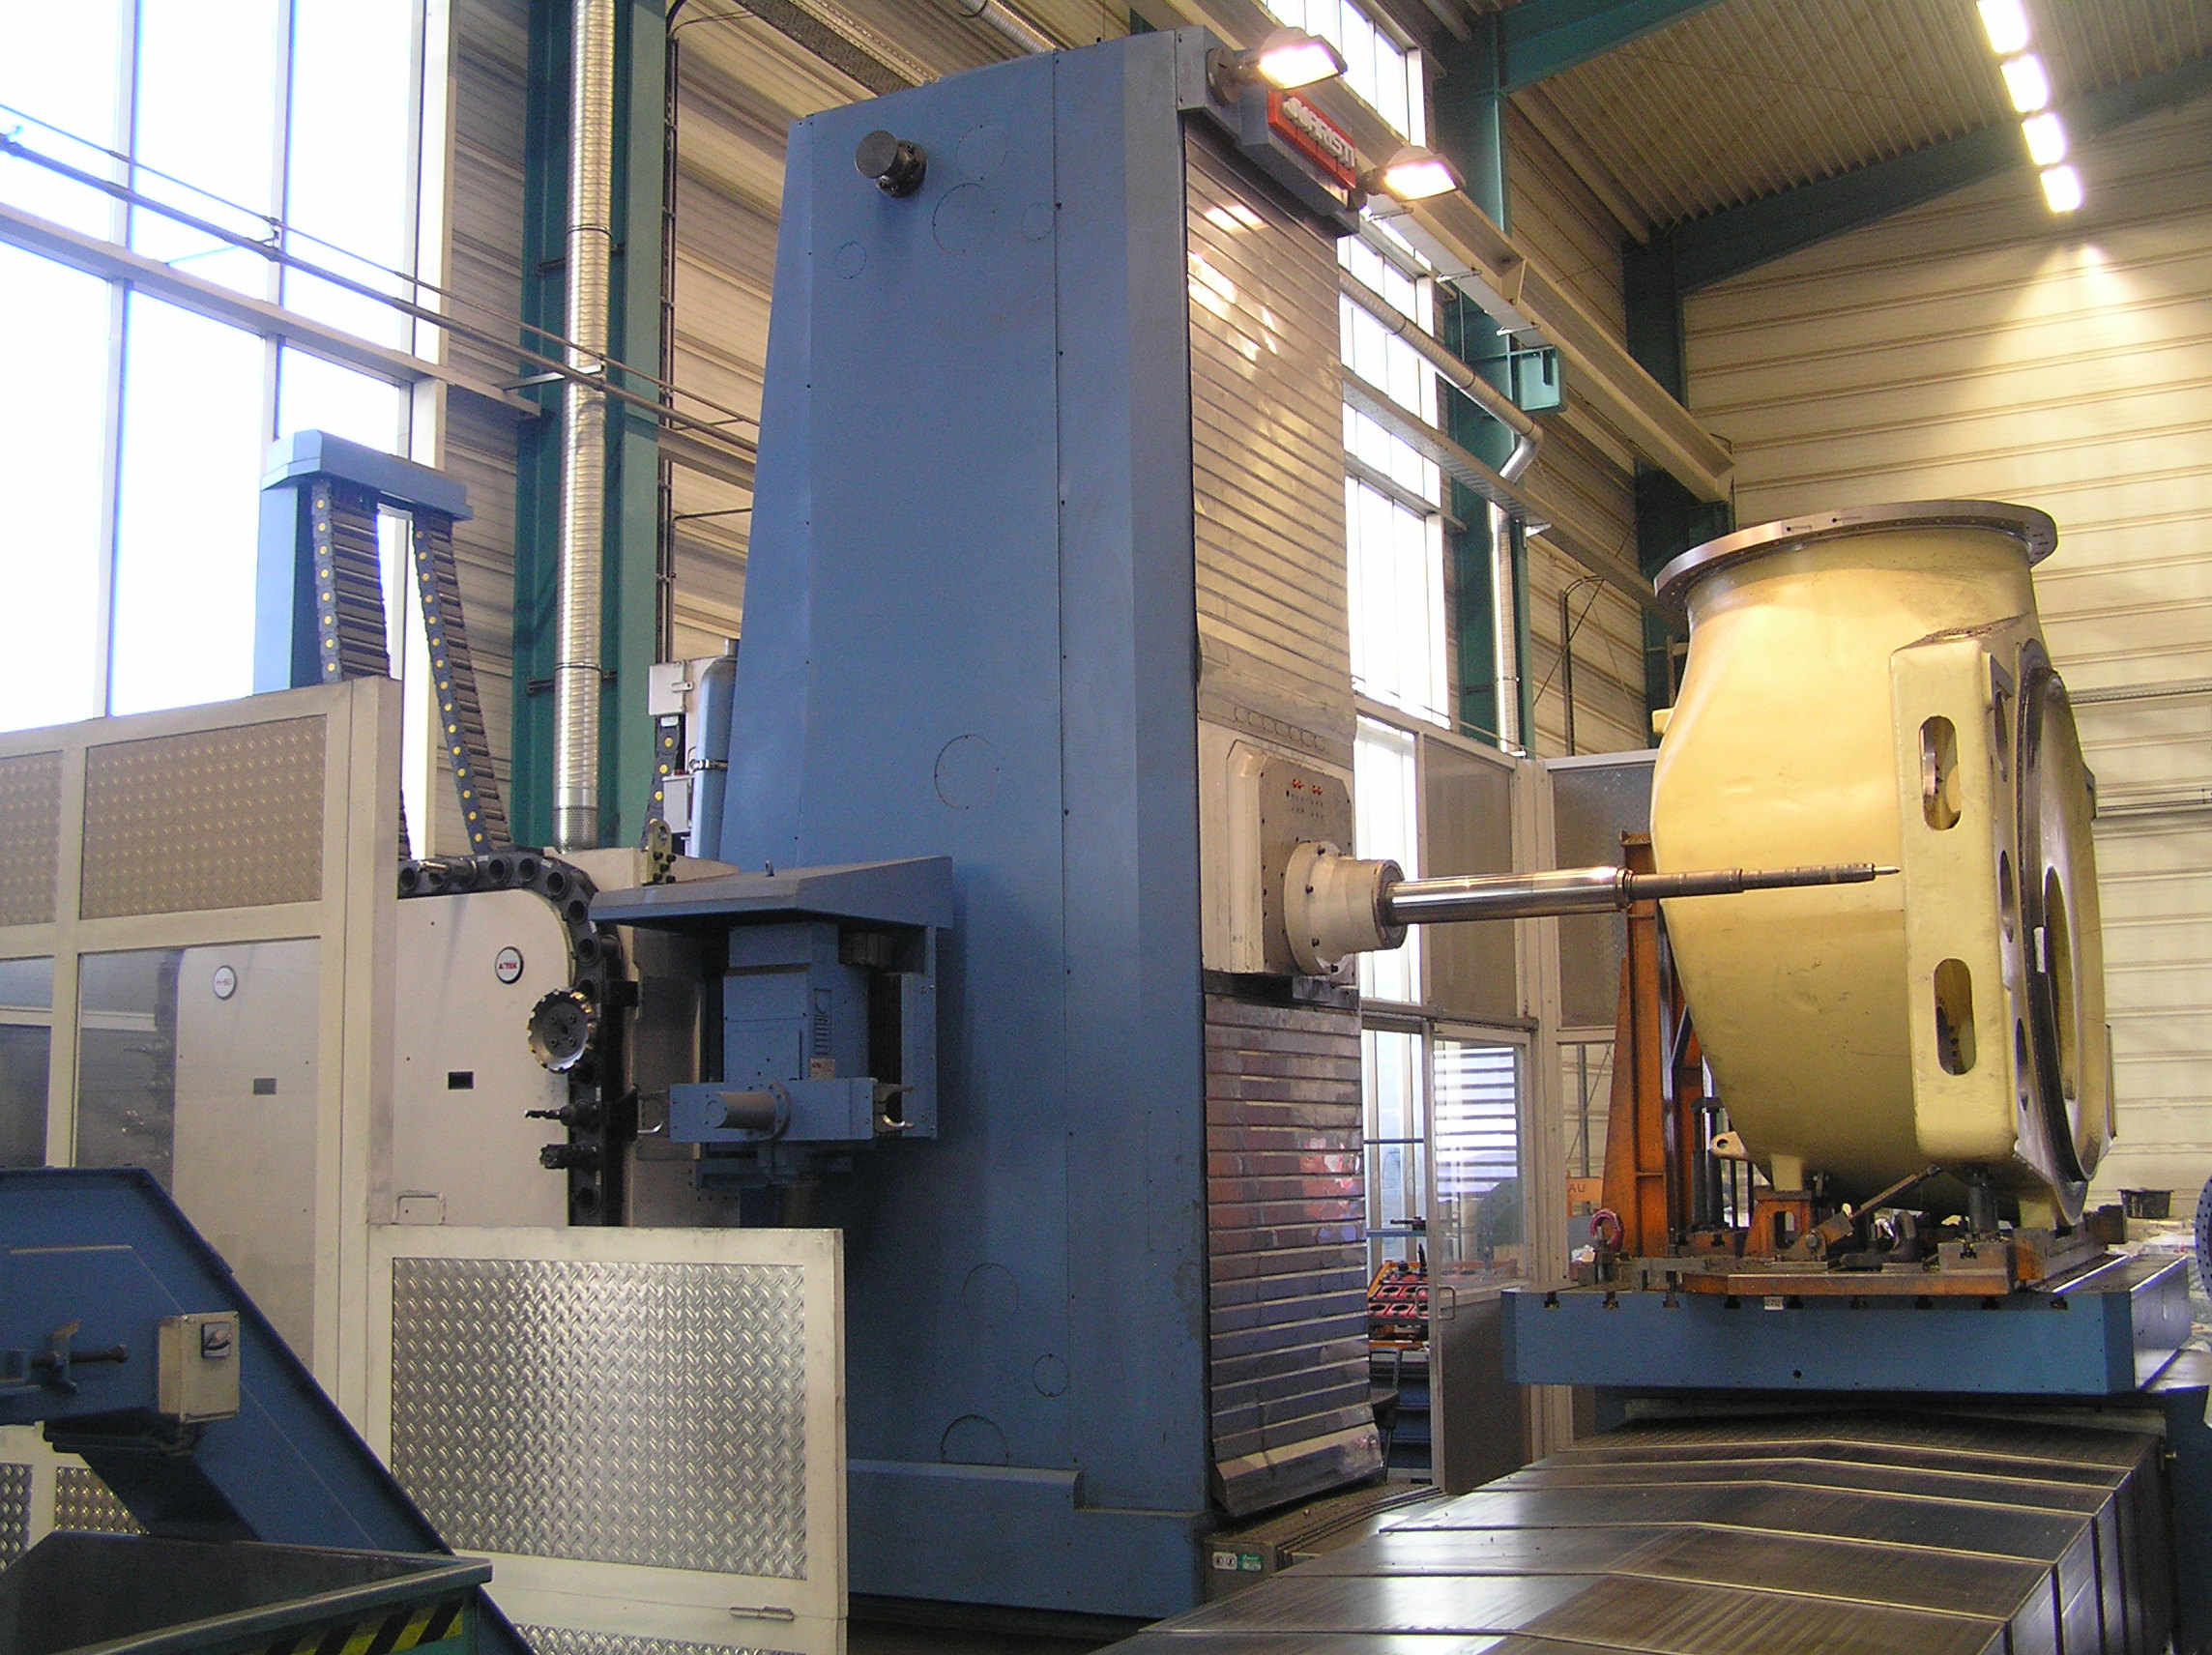 Precision table type boring and milling machines BORING-MILLING CENTRE JUARISTI TS3-TS5